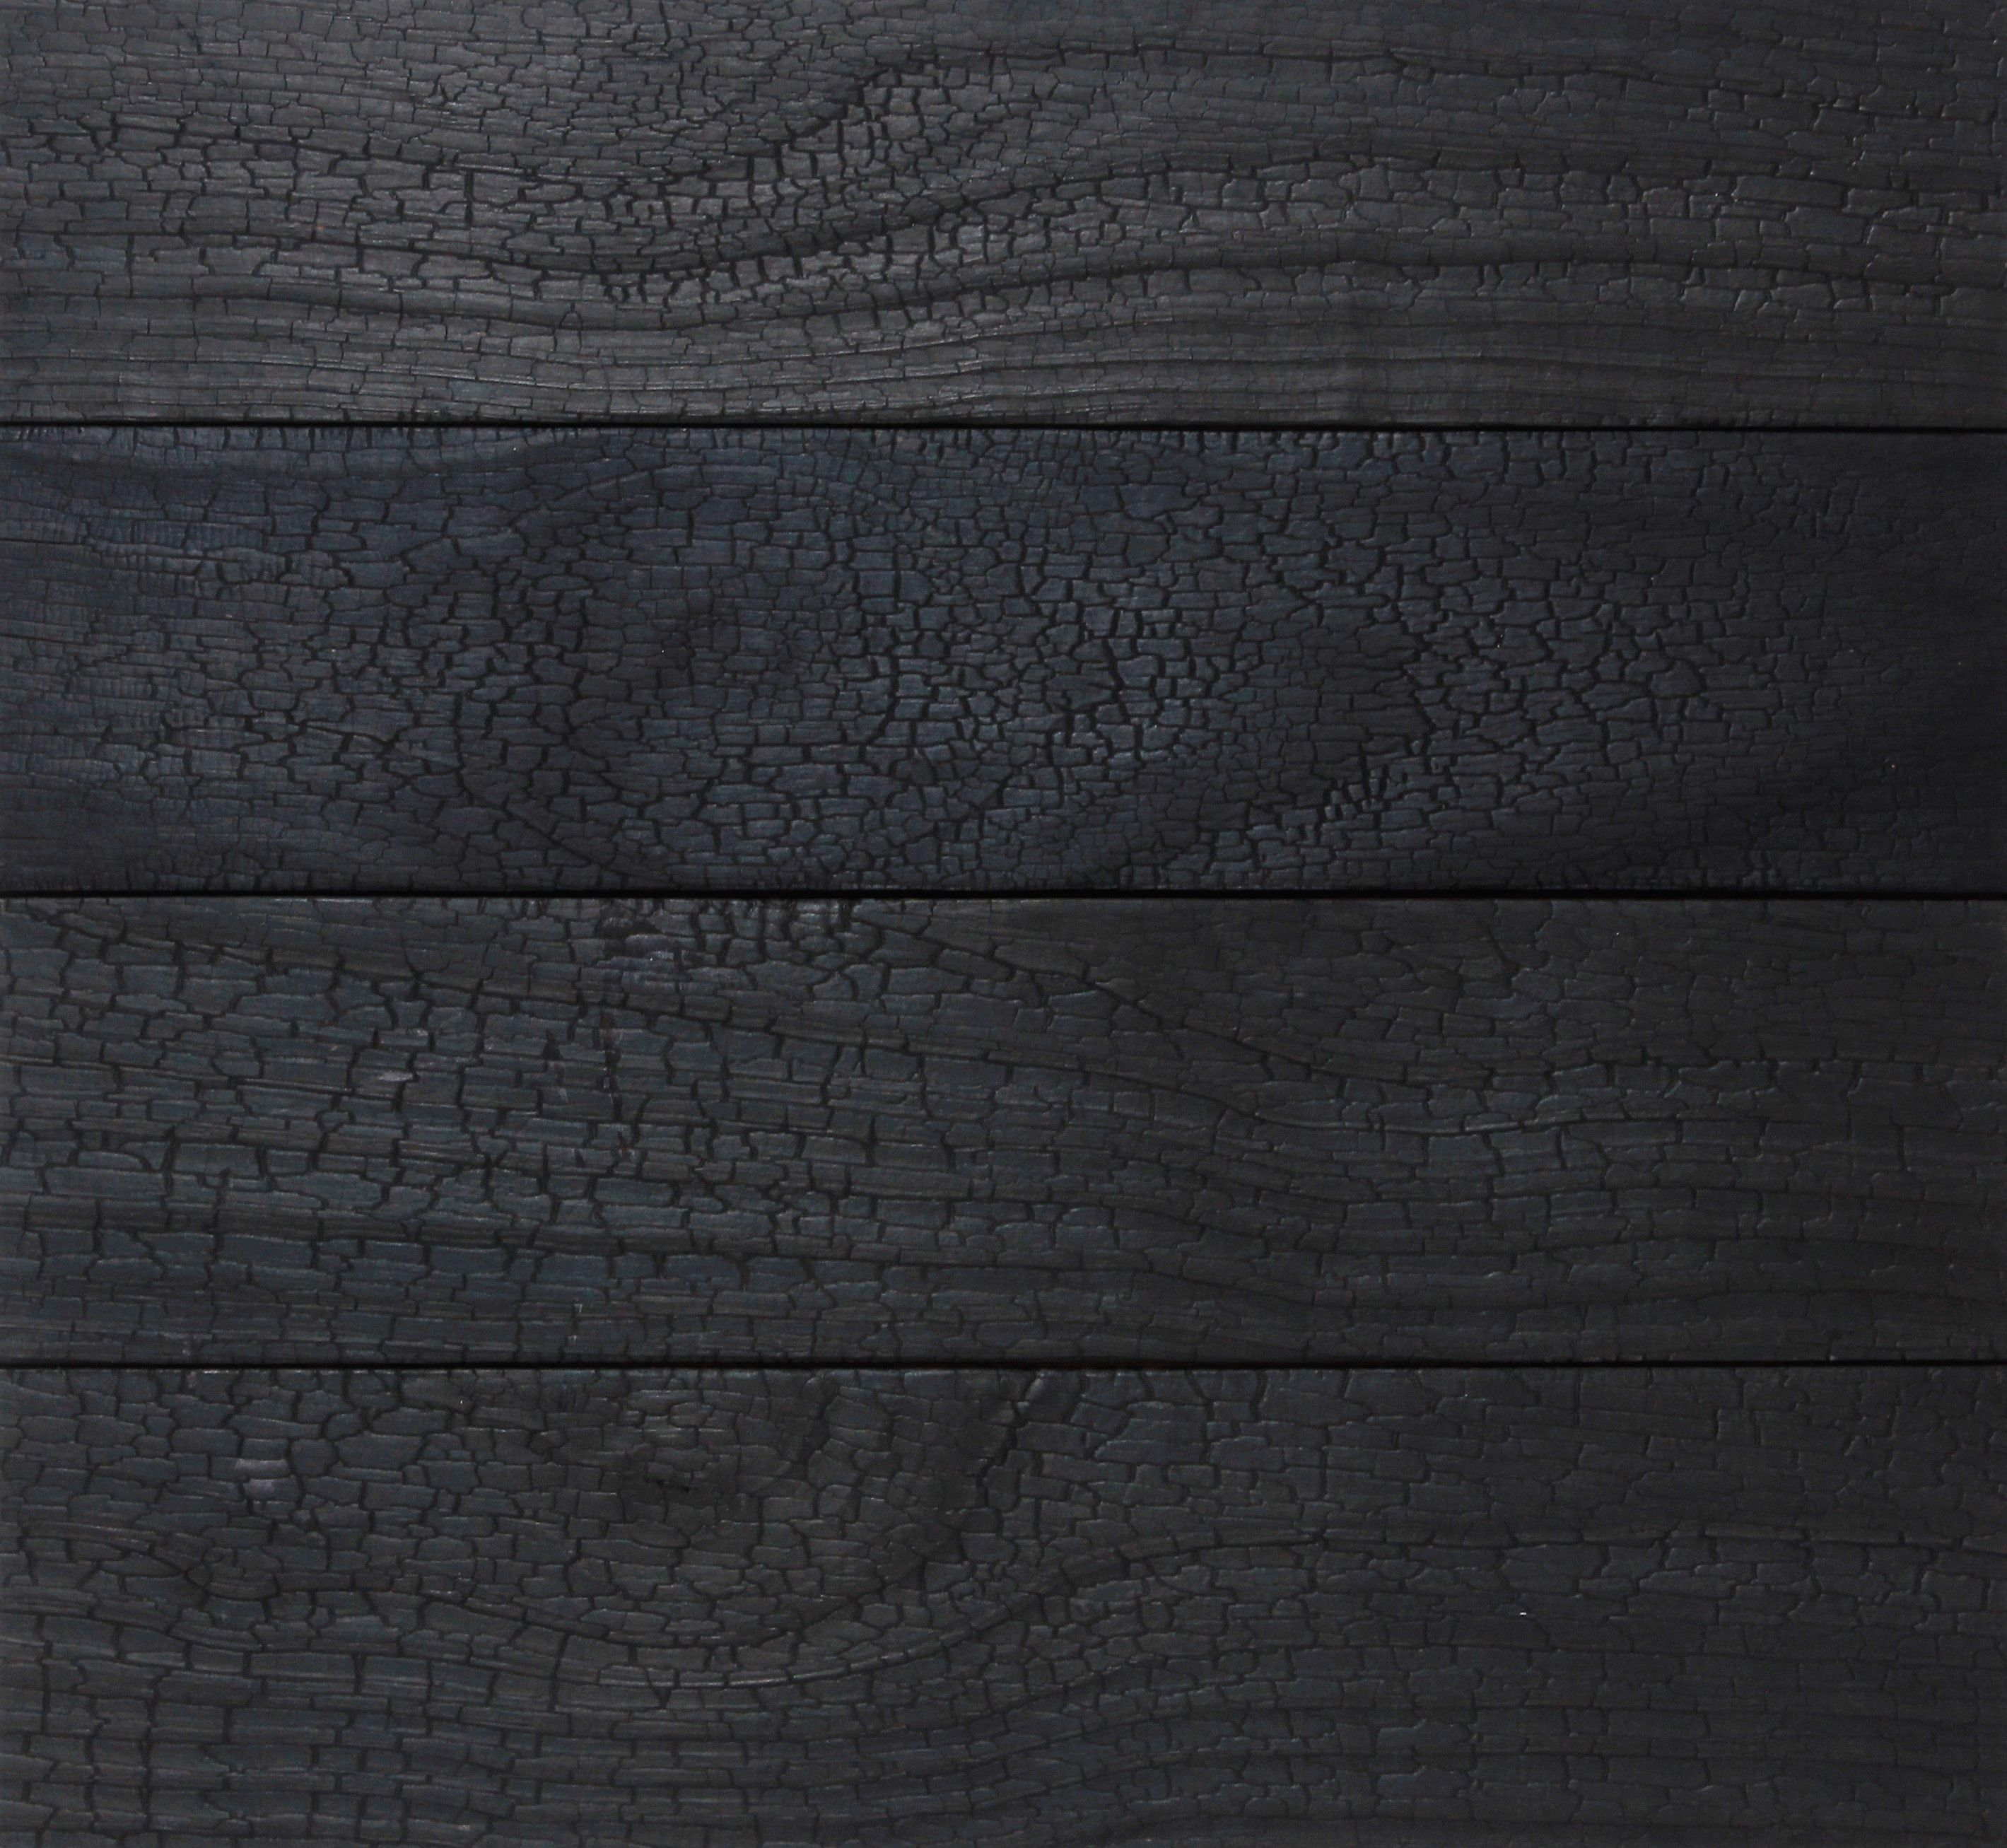 Shou Sugi Ban Charred Wood Made In Dallas Tx Competitive